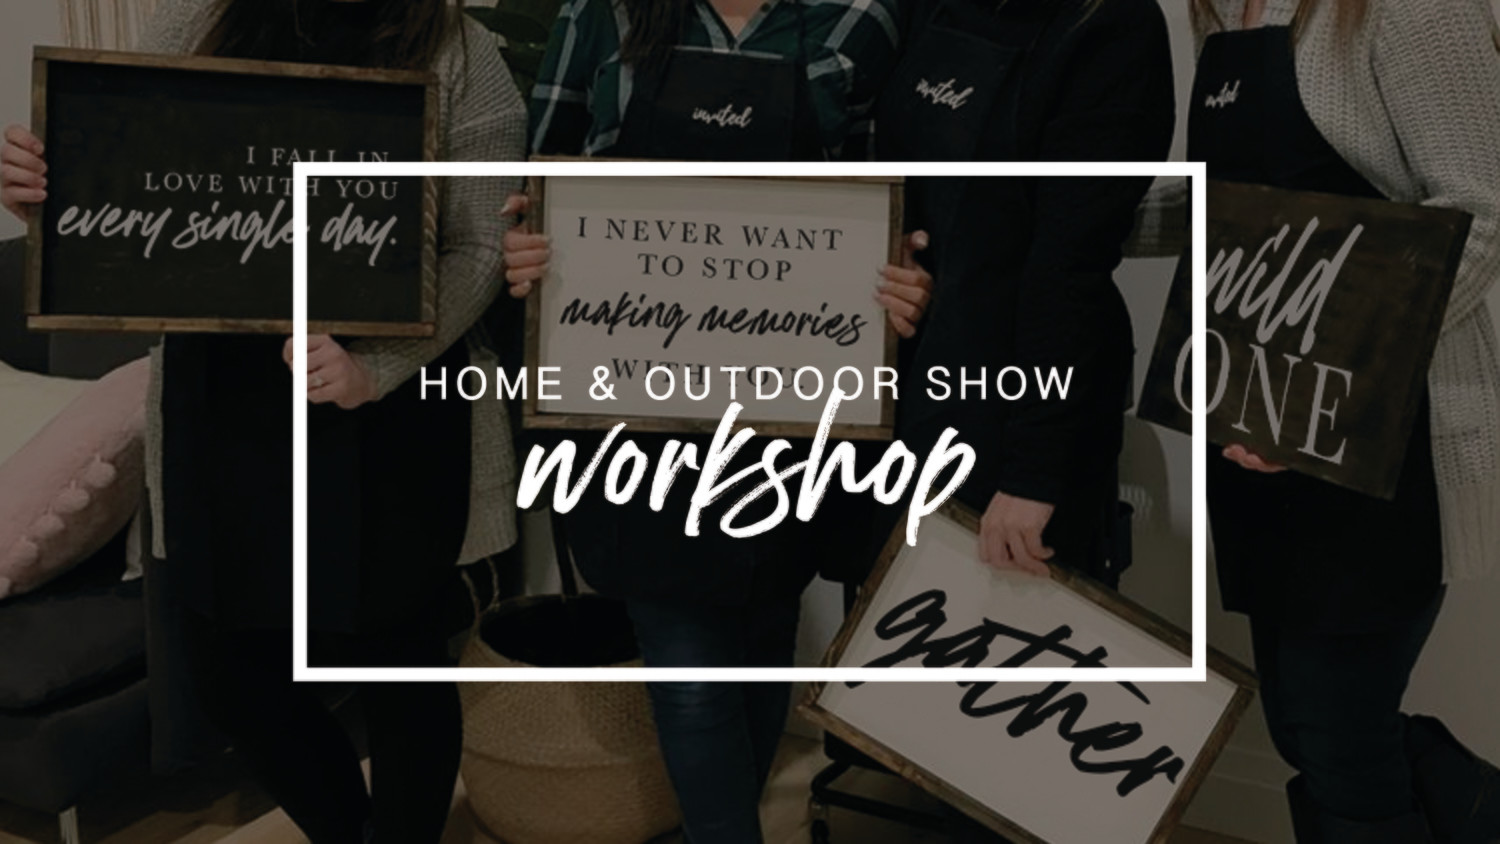 Sign Party - Home & Outdoor Show